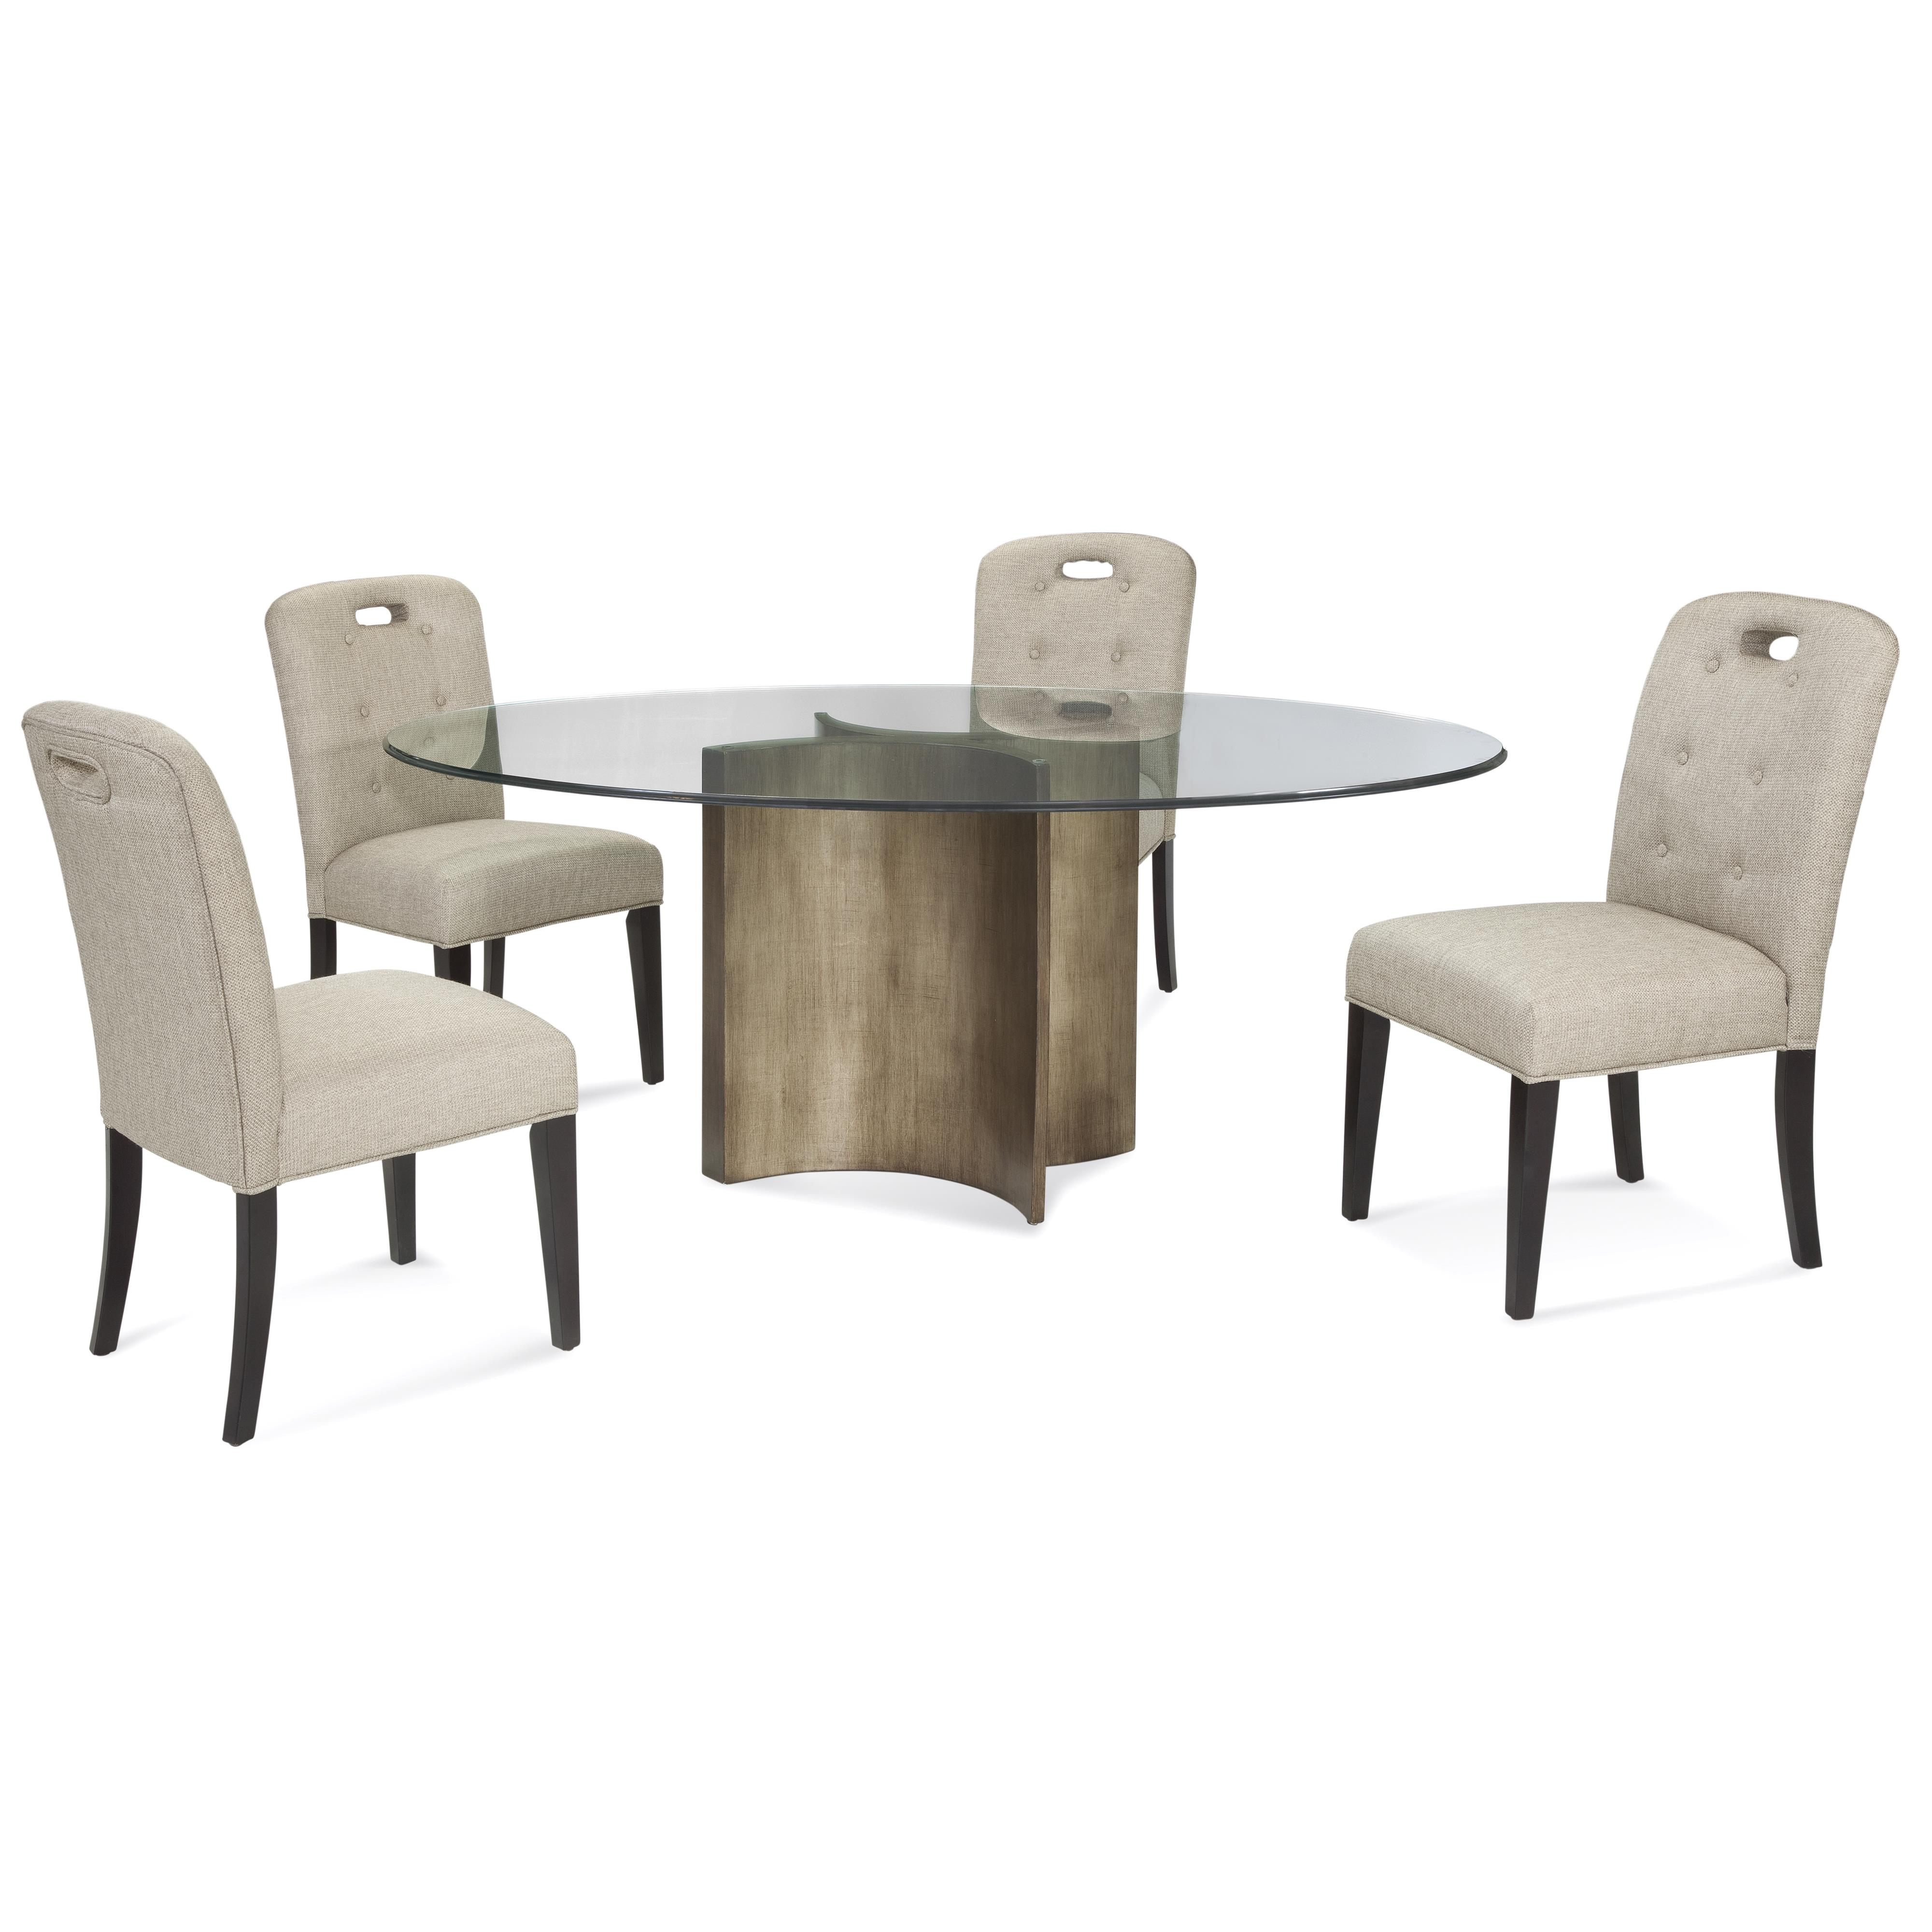 Thoroughly Modern Symmetry Casual Dining Set by Bassett Mirror at Alison Craig Home Furnishings